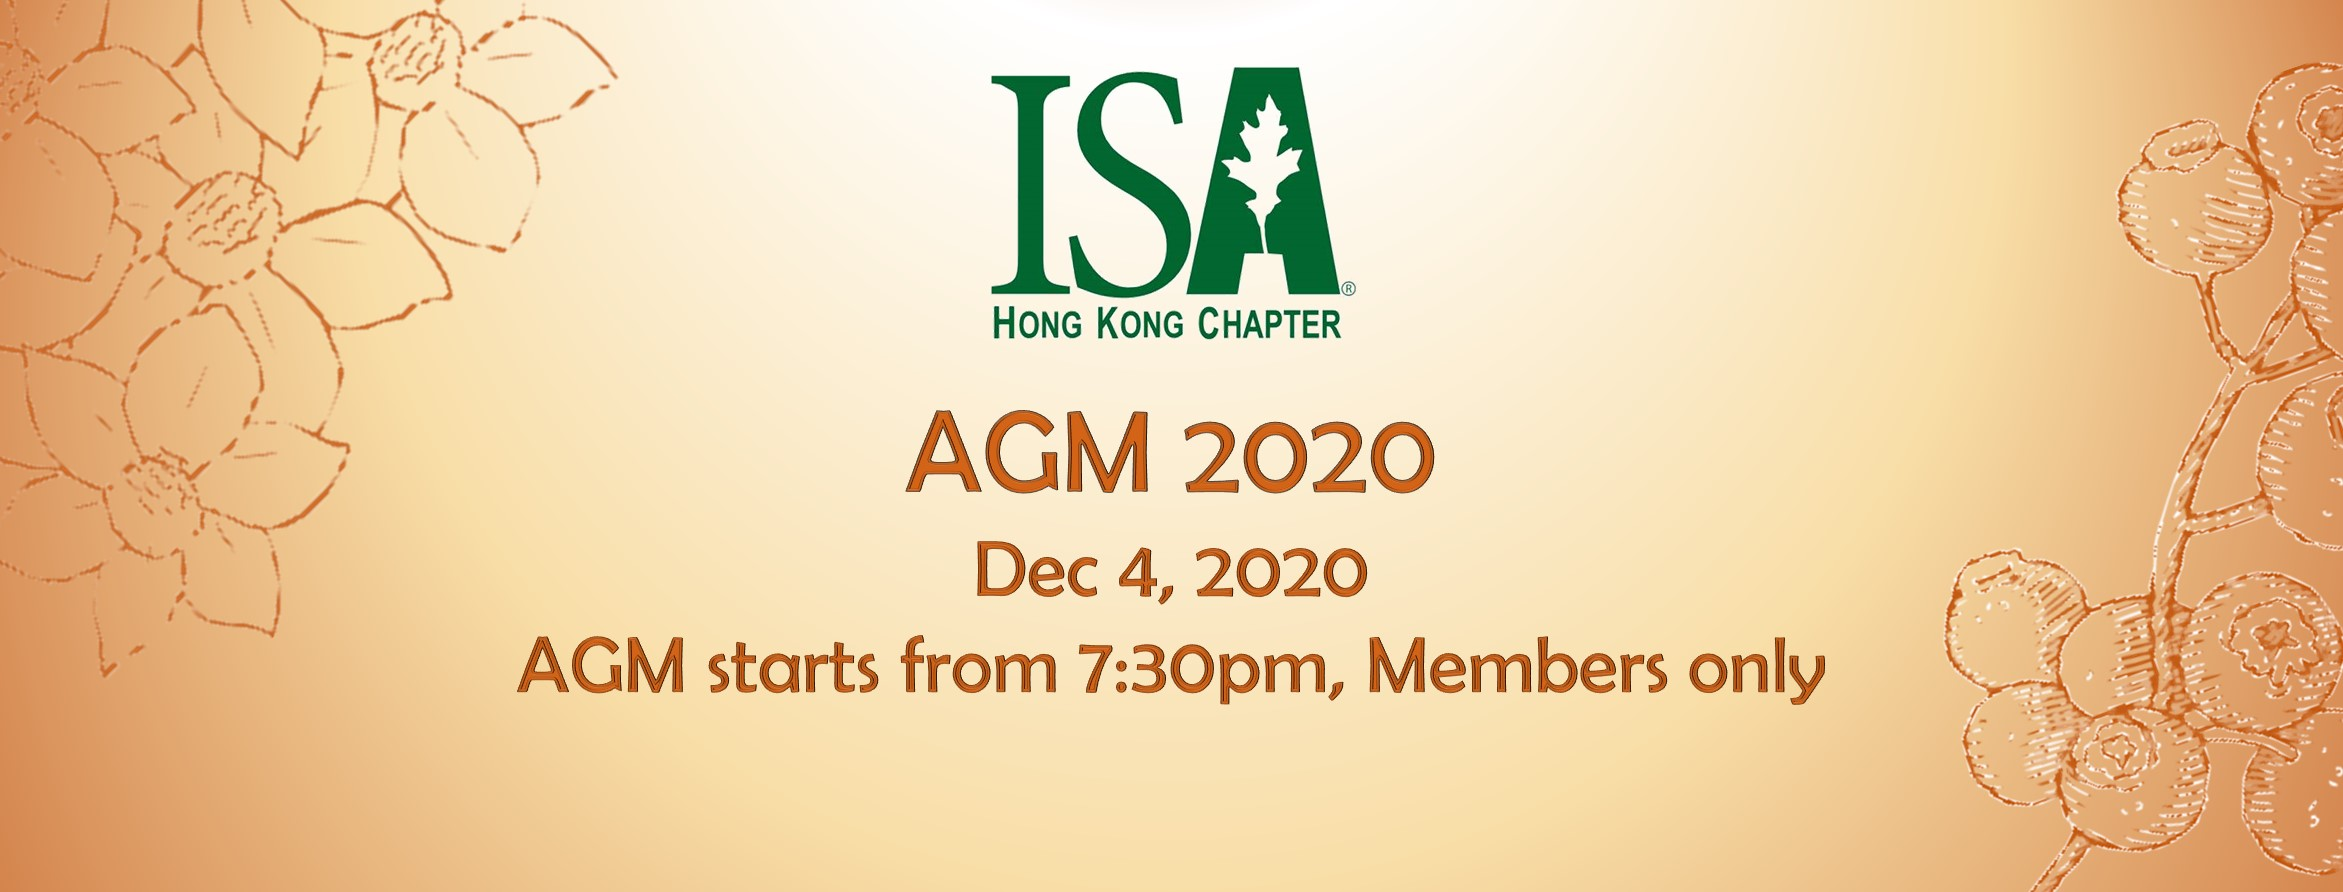 Notice of AGM 2020